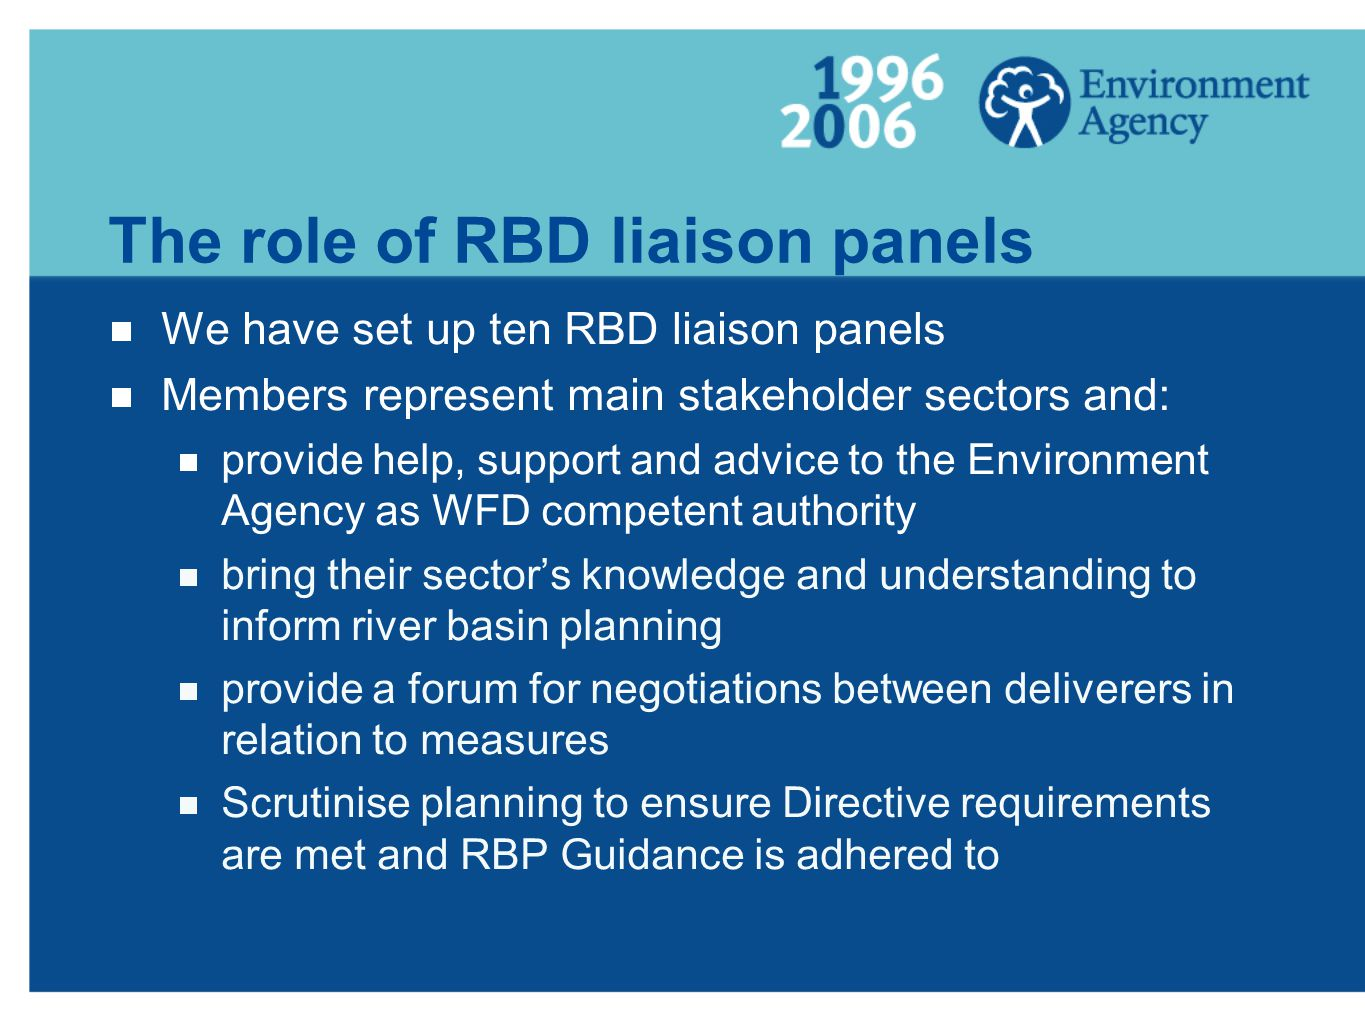 The role of RBD liaison panels We have set up ten RBD liaison panels Members represent main stakeholder sectors and: provide help, support and advice to the Environment Agency as WFD competent authority bring their sectors knowledge and understanding to inform river basin planning provide a forum for negotiations between deliverers in relation to measures Scrutinise planning to ensure Directive requirements are met and RBP Guidance is adhered to